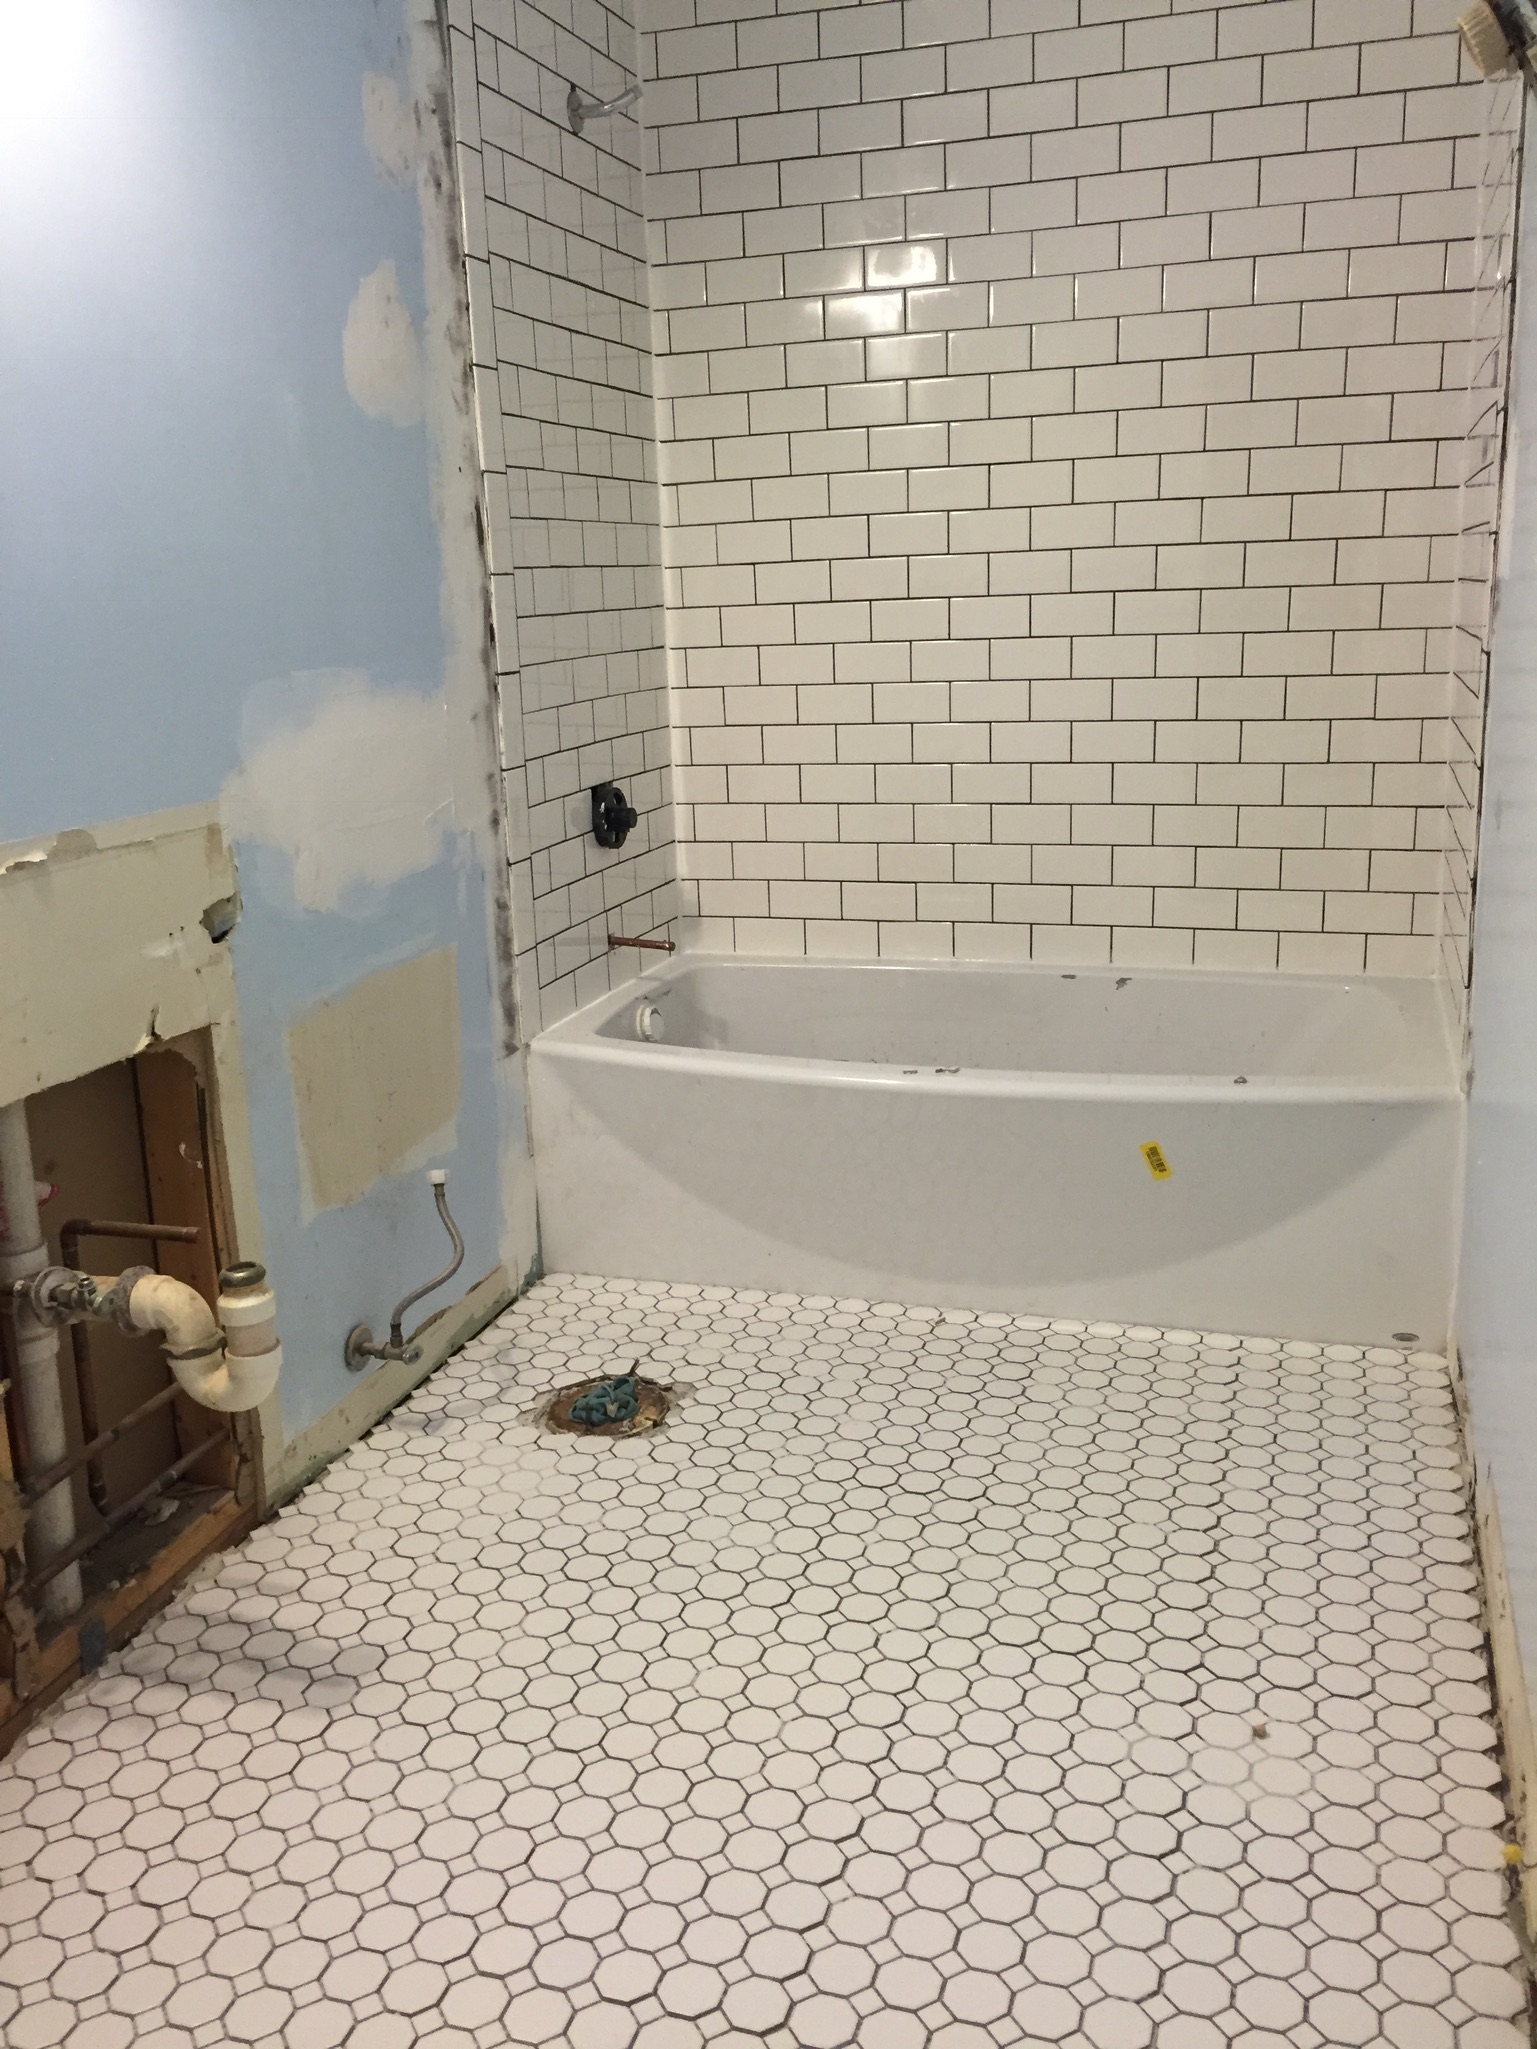 Added hexagon floor tile and subway tile with charcoal gray grout. Removed closet and plumbed for double vanity.